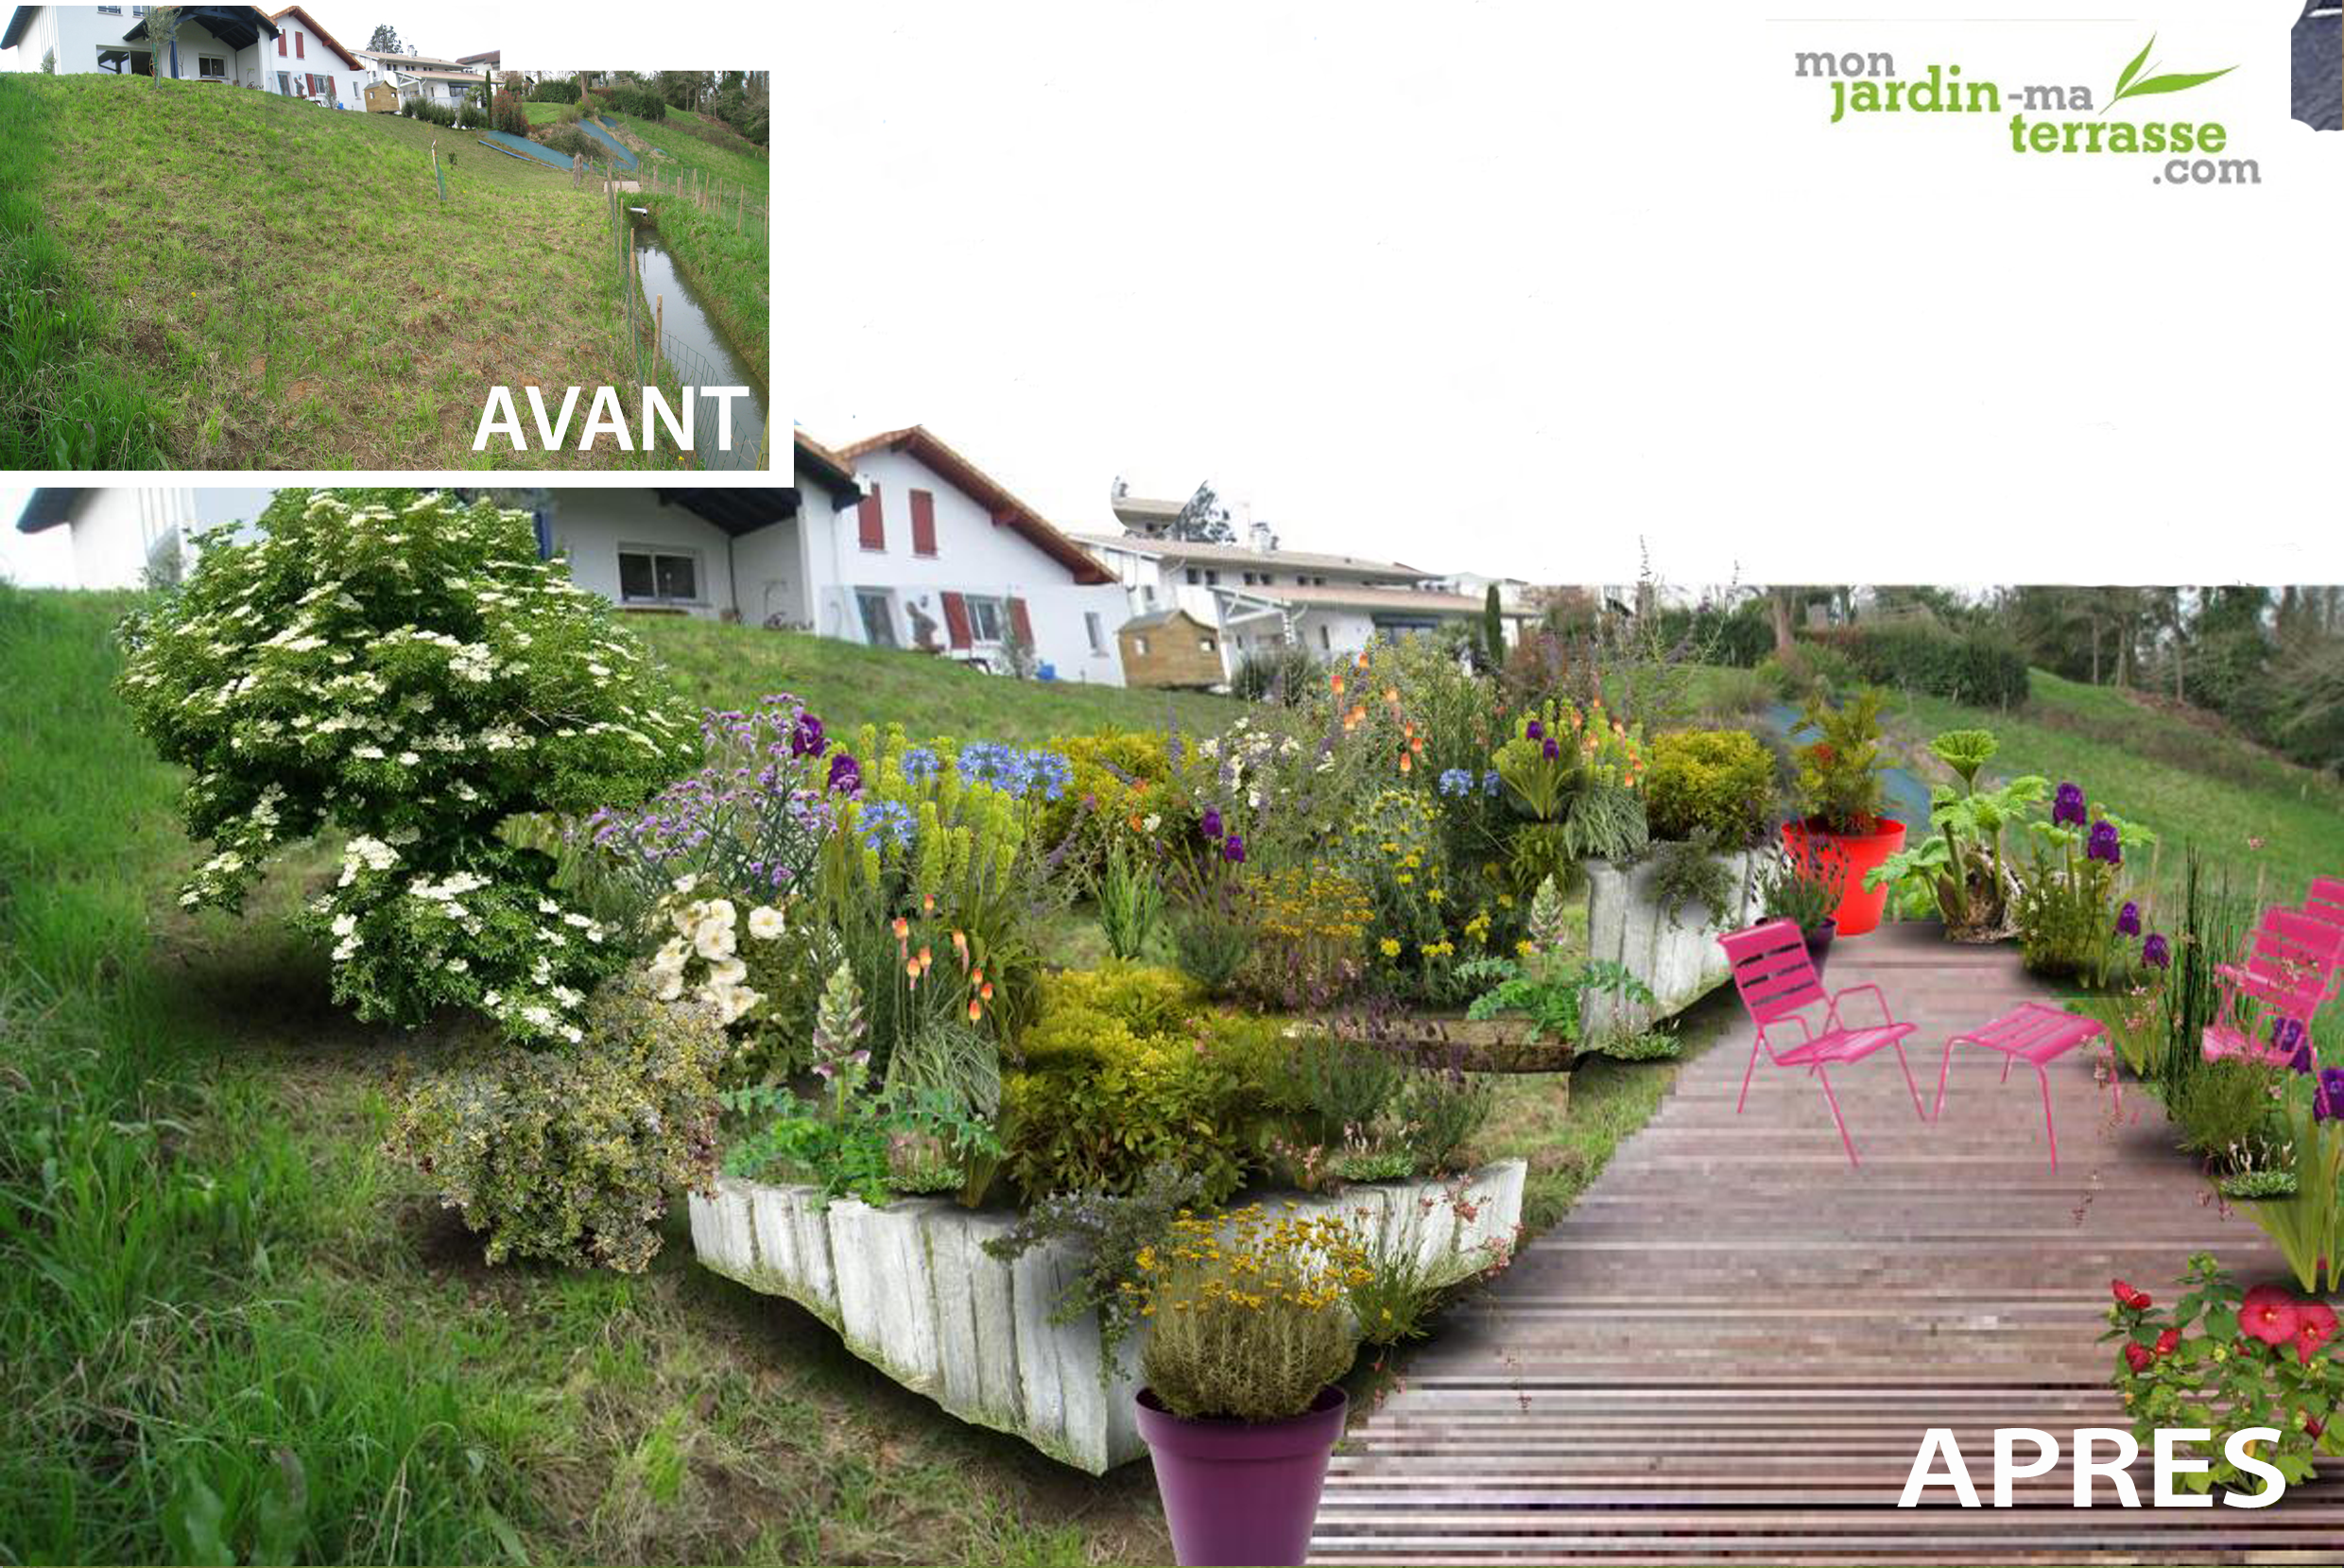 Am nagement d un terrain en pente monjardin for Amenagement exterieur entree maison en pente